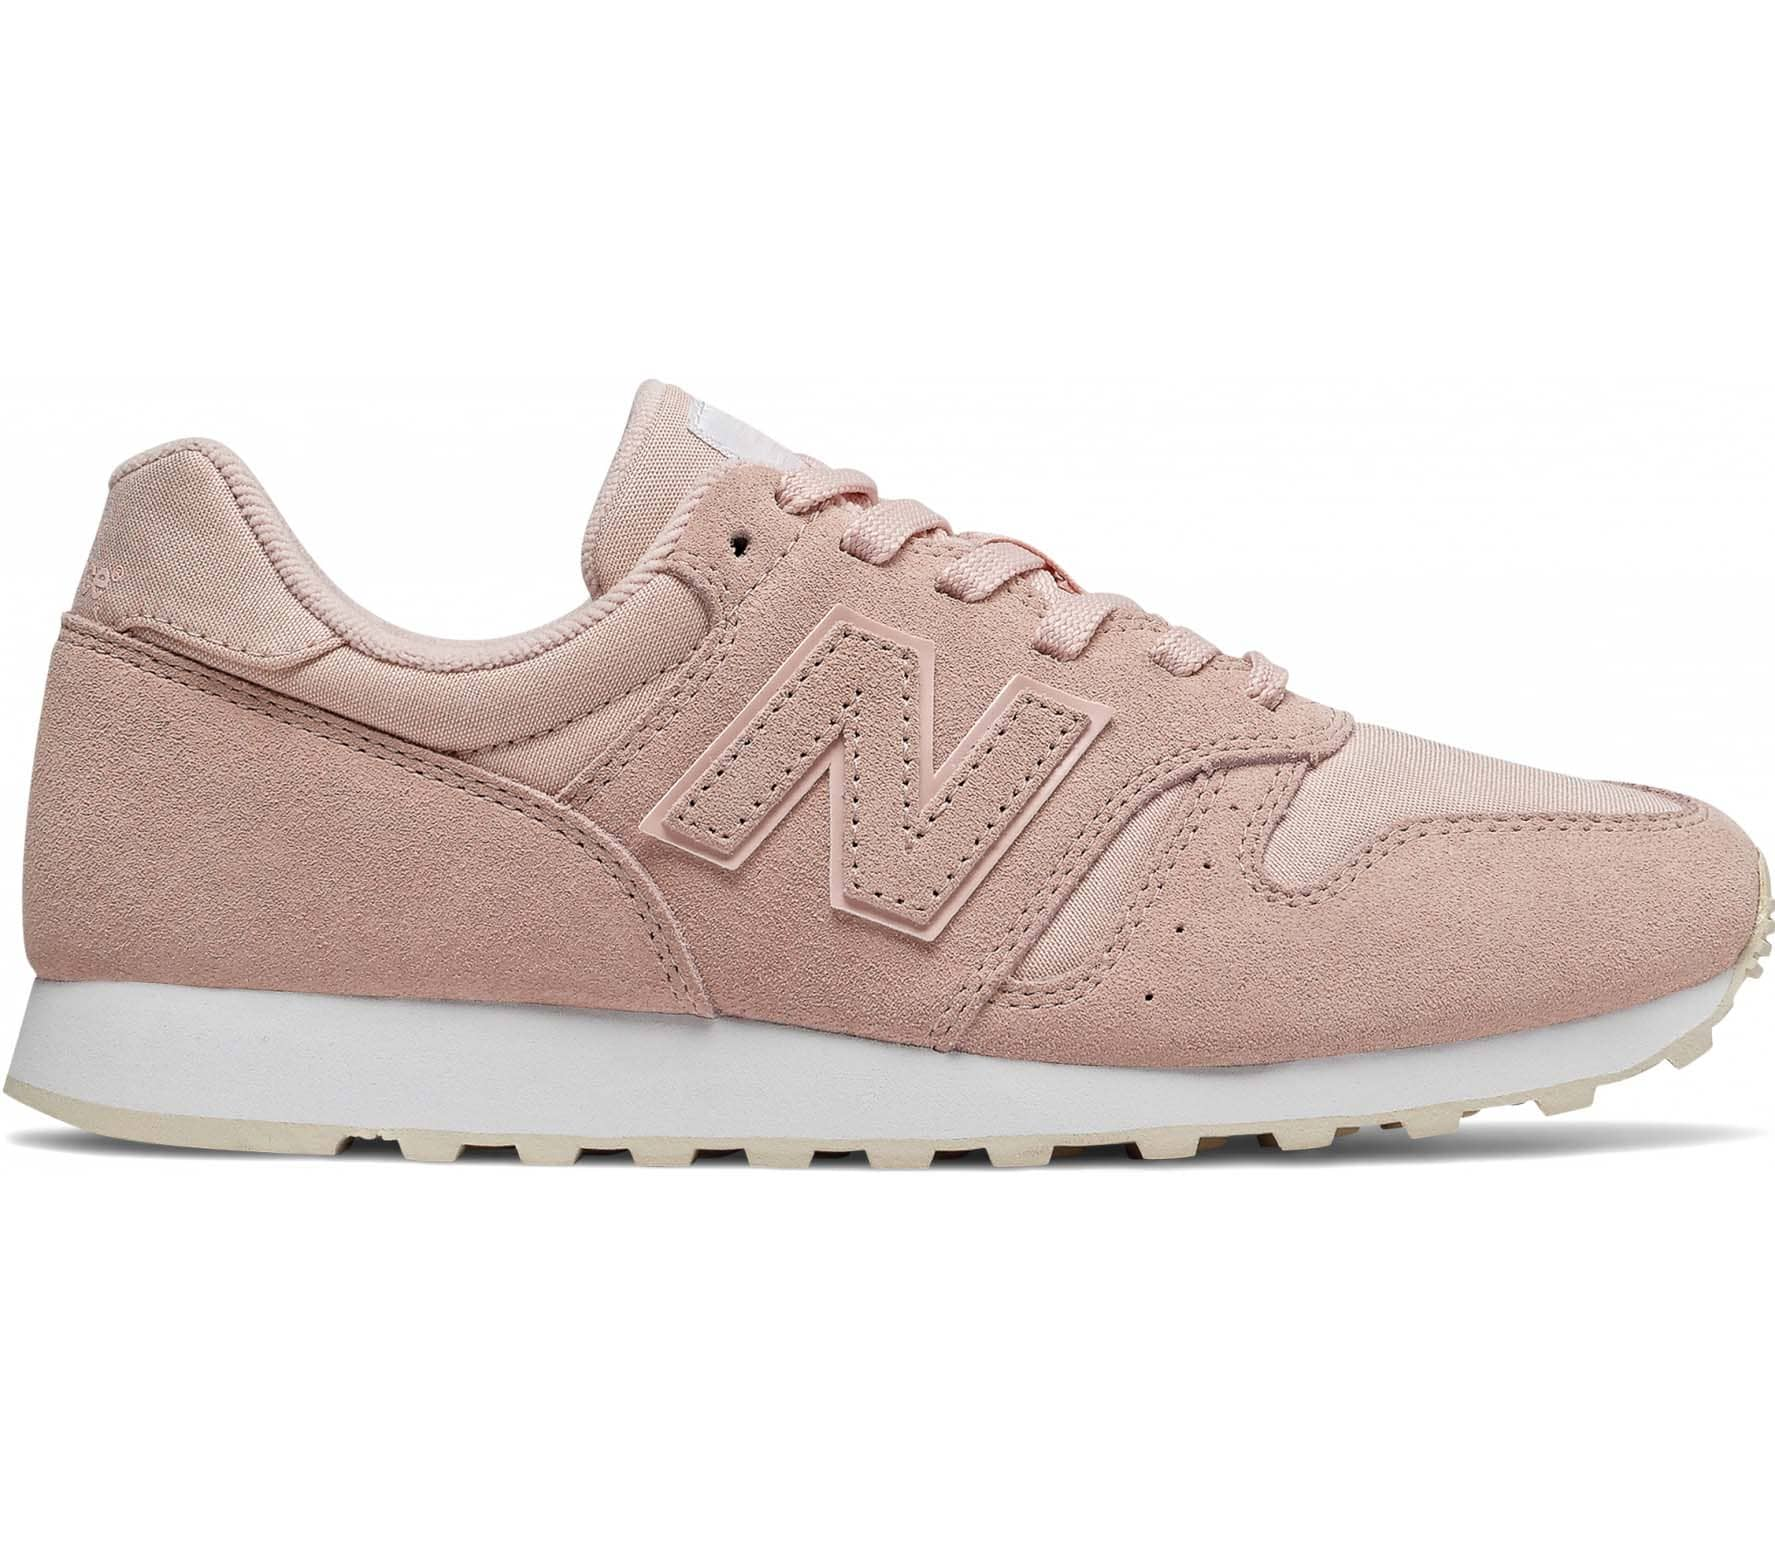 cfbeee4fa1 New Balance - 373 Donna sneaker (rosa) compra online su Keller Sports